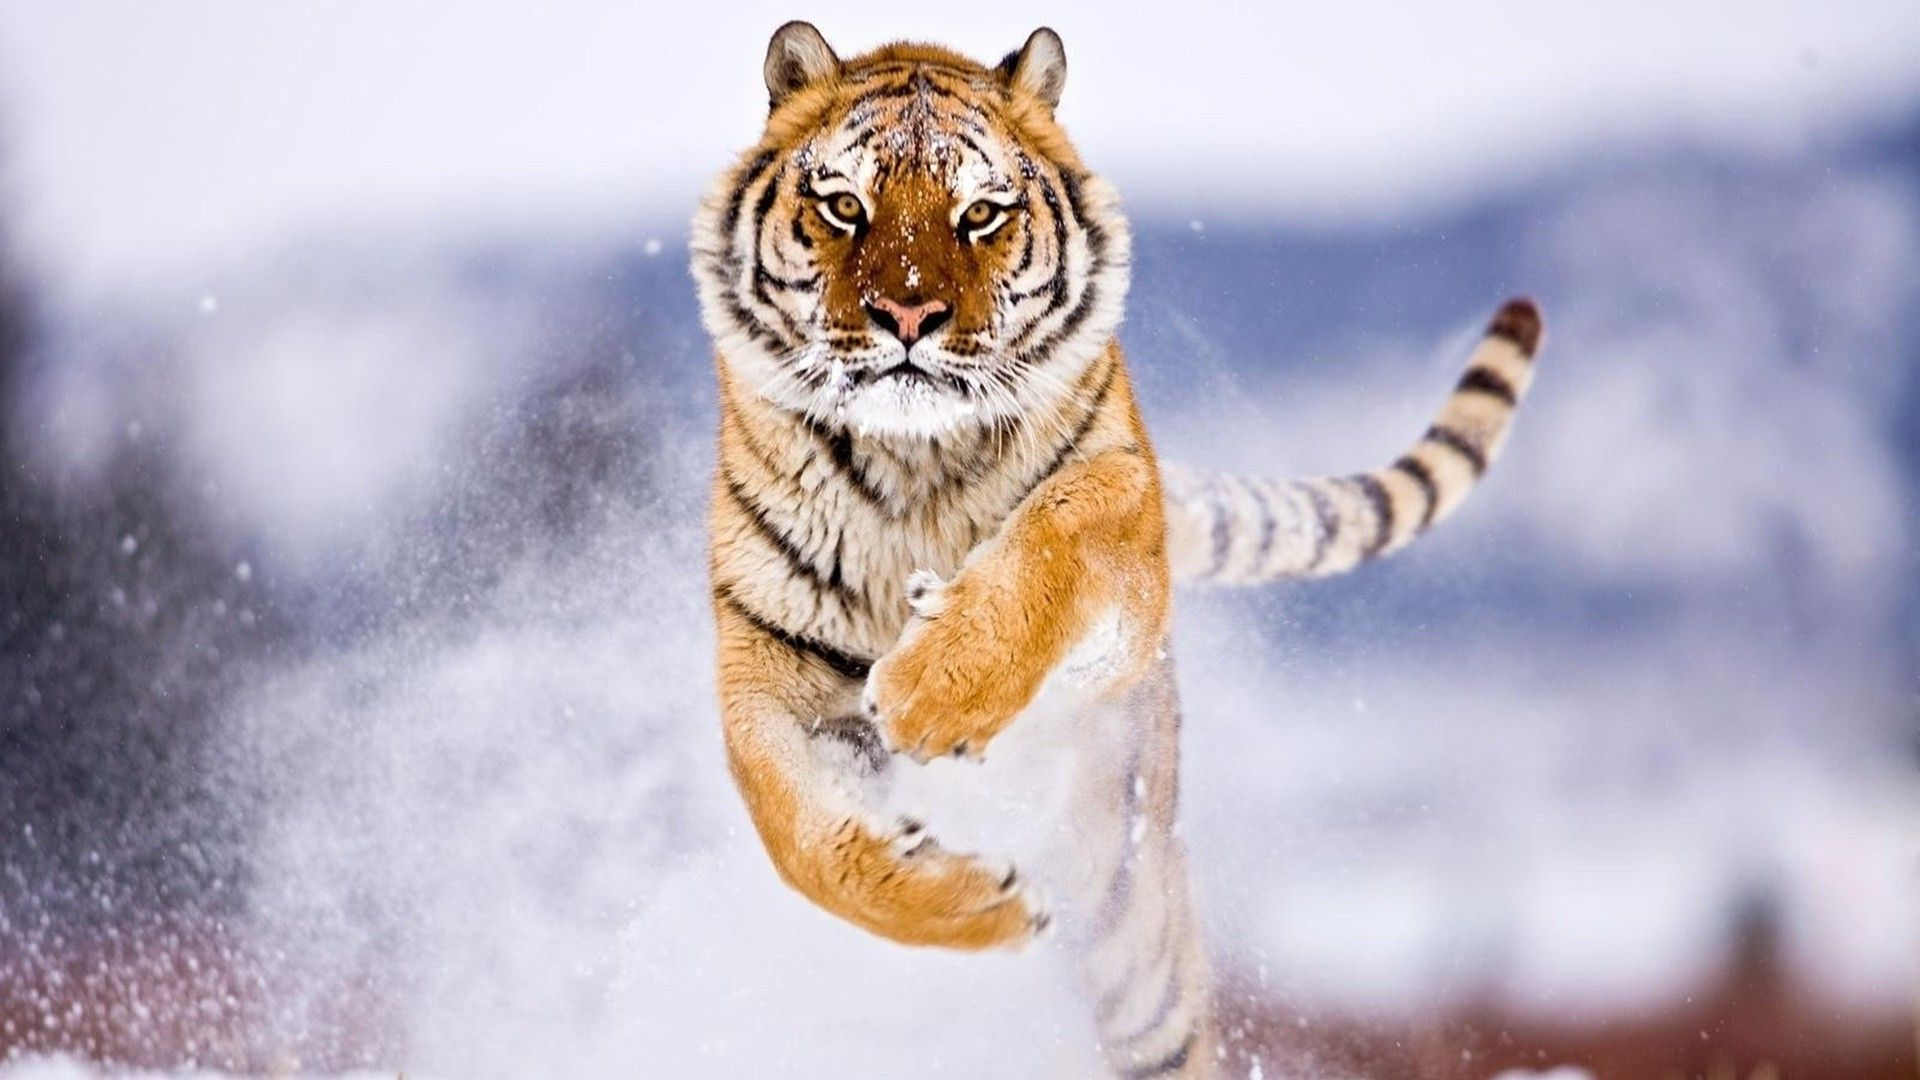 Siberian snow tiger iPhone Wallpapers iPhone Wallpaper | HD ...